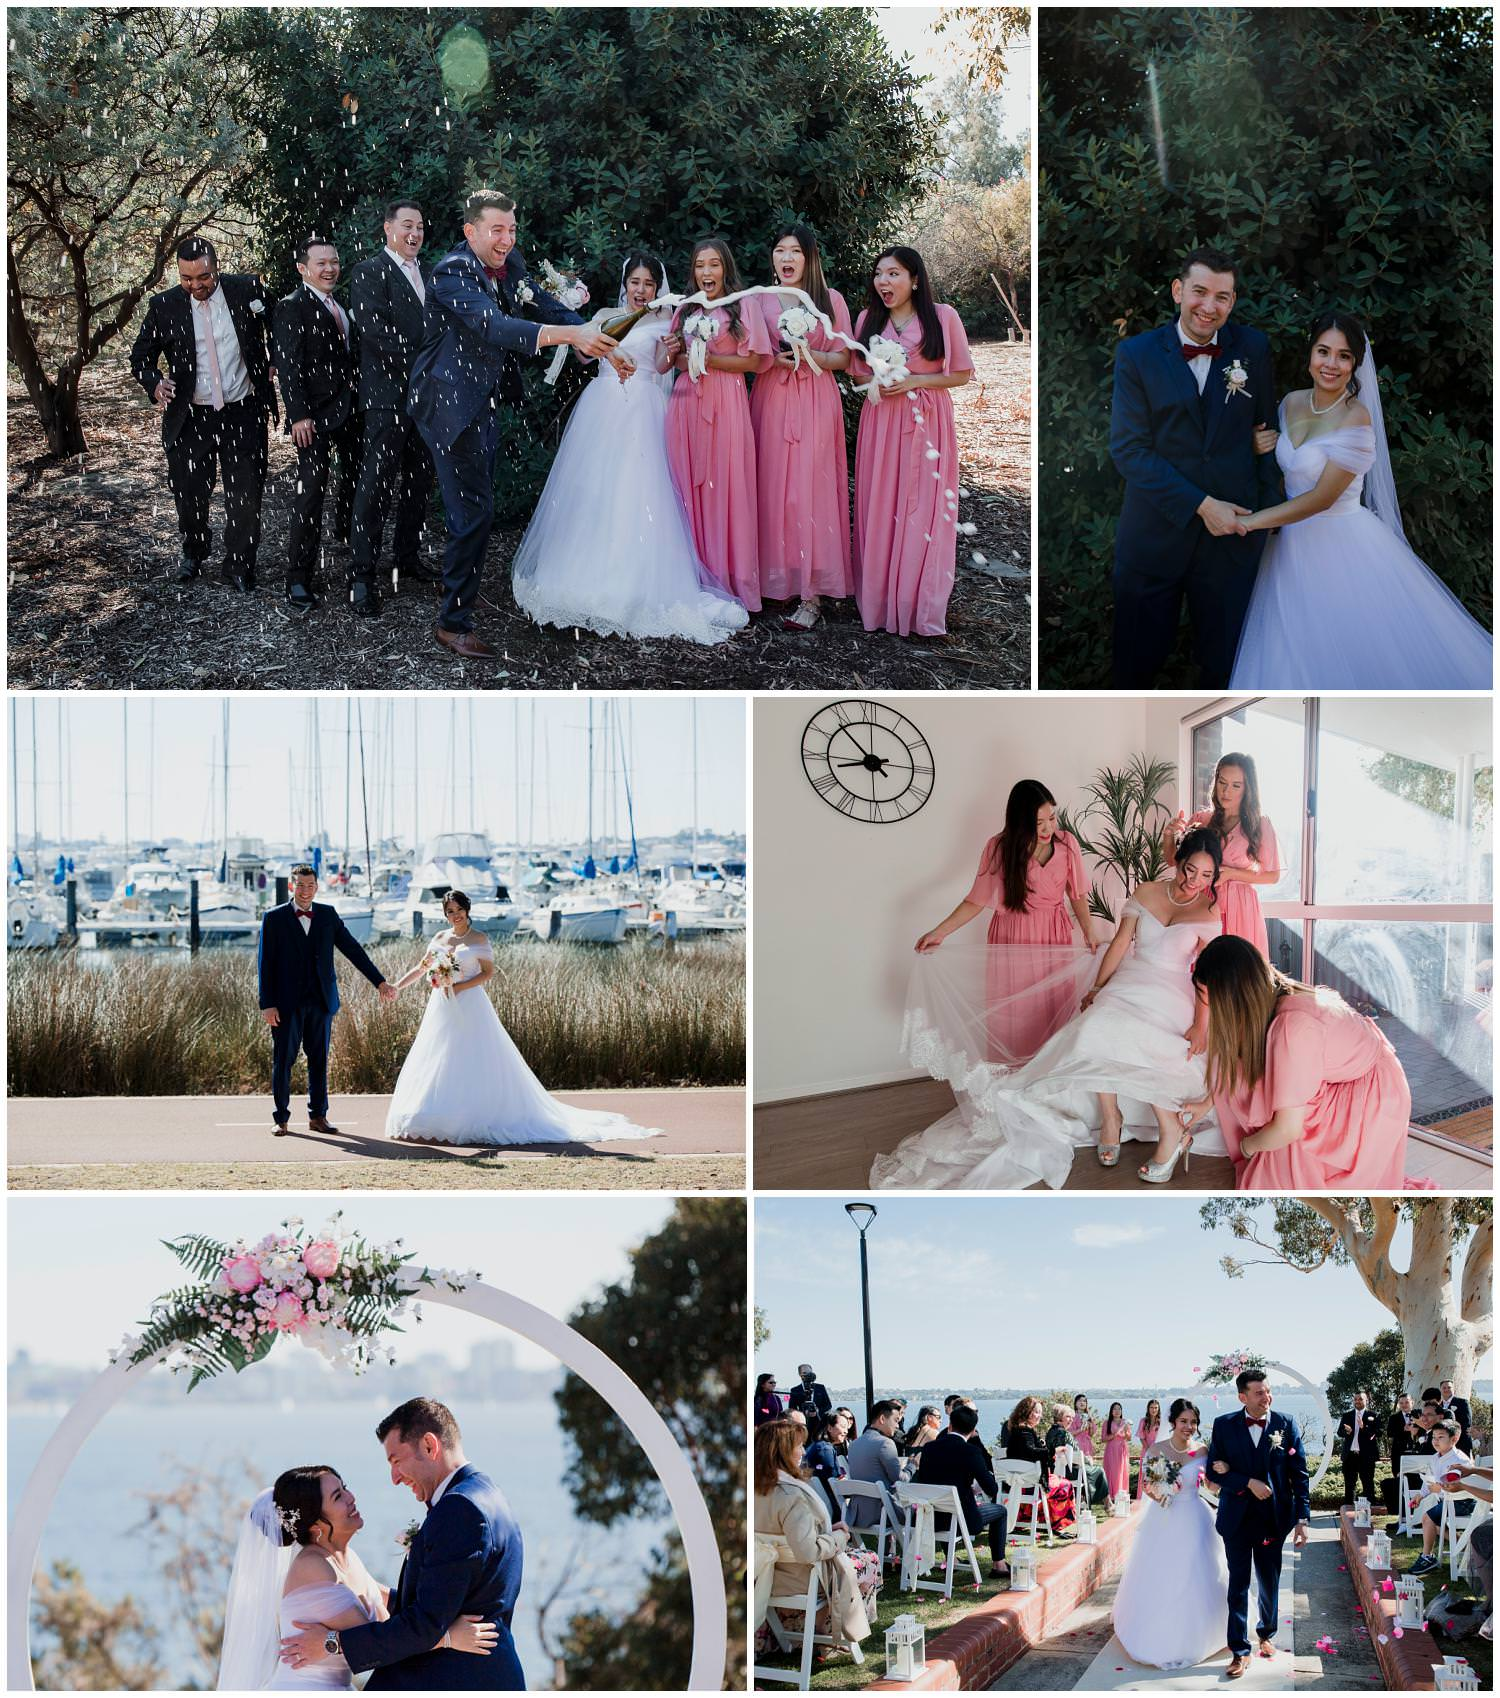 Yenny + Elad - BWG Steakhouse Wedding